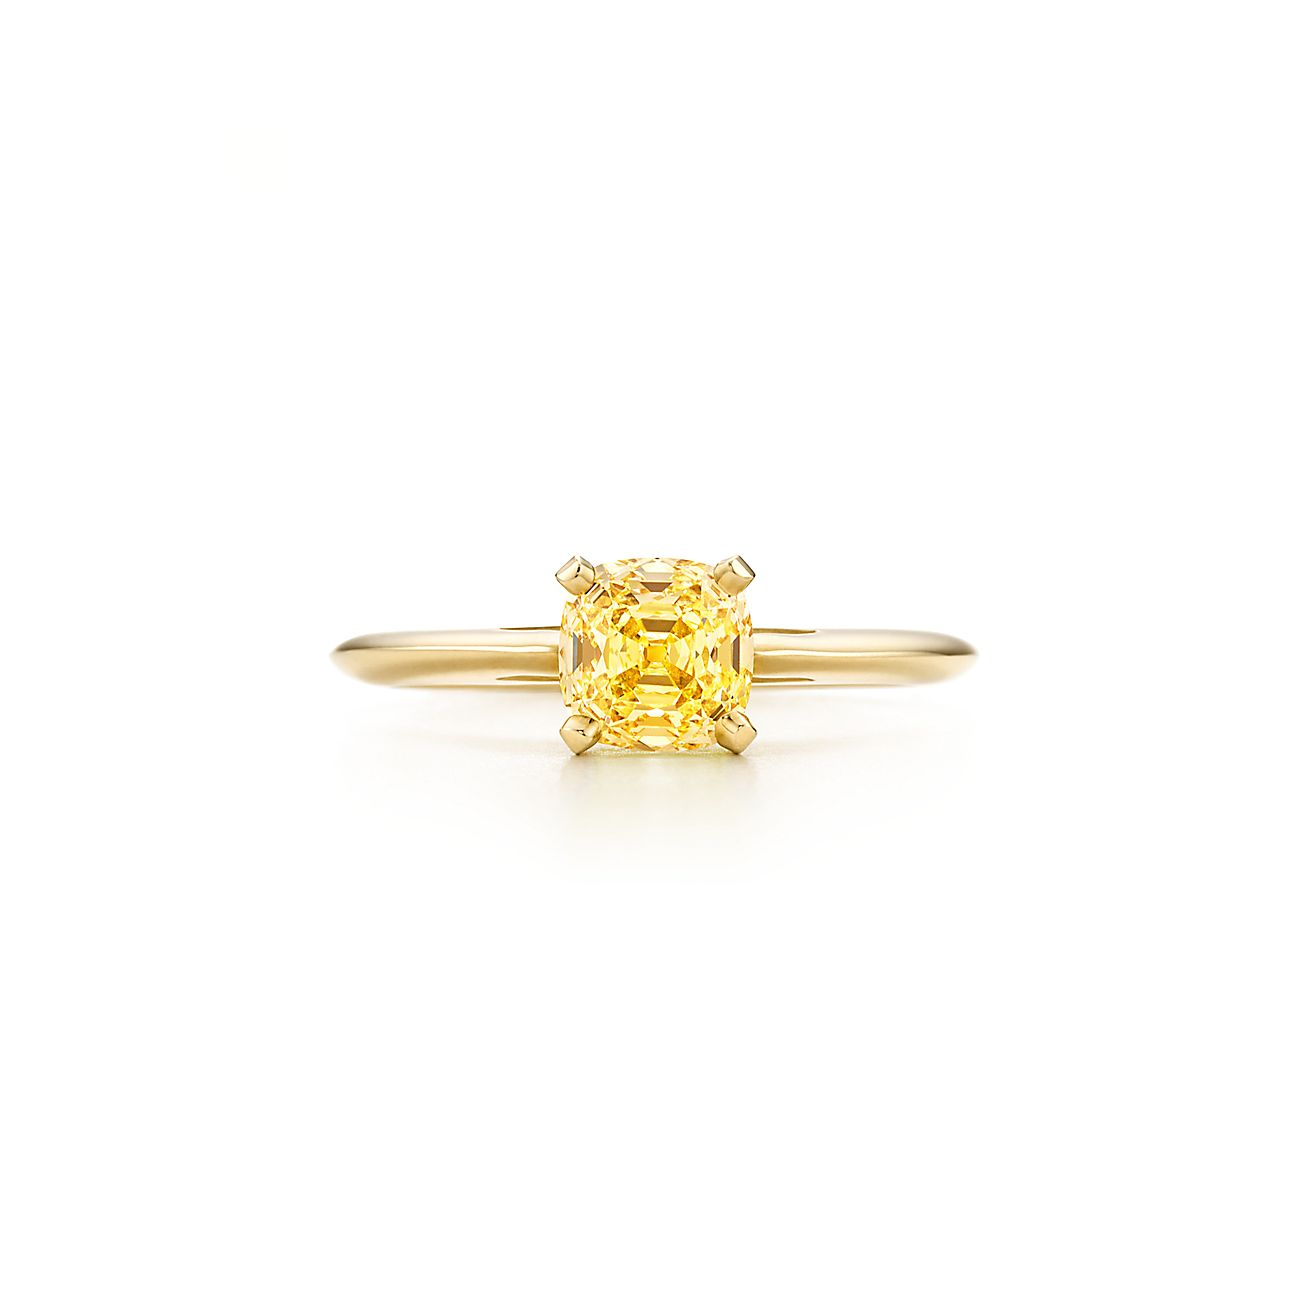 Ring In 18k Gold With A Square Antique Modified Brilliant Yellow